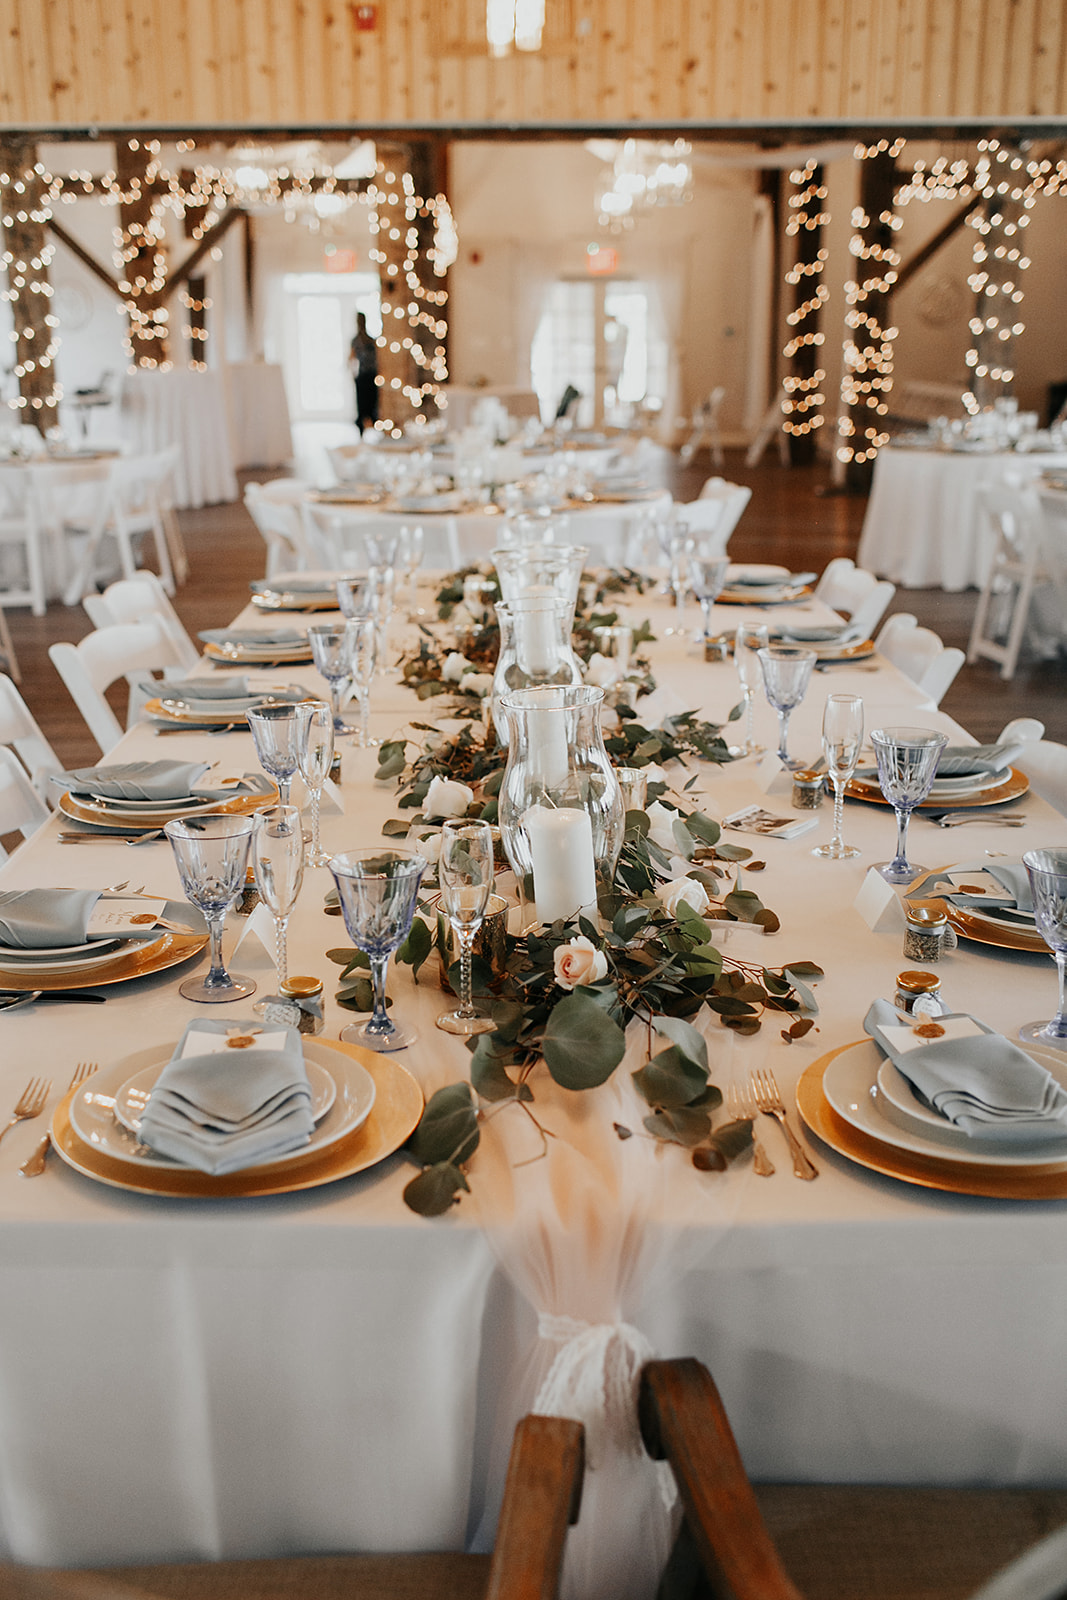 Kendra_and_Mattew_Indiana_Wedding_by_Emily_Wehner-188.jpg